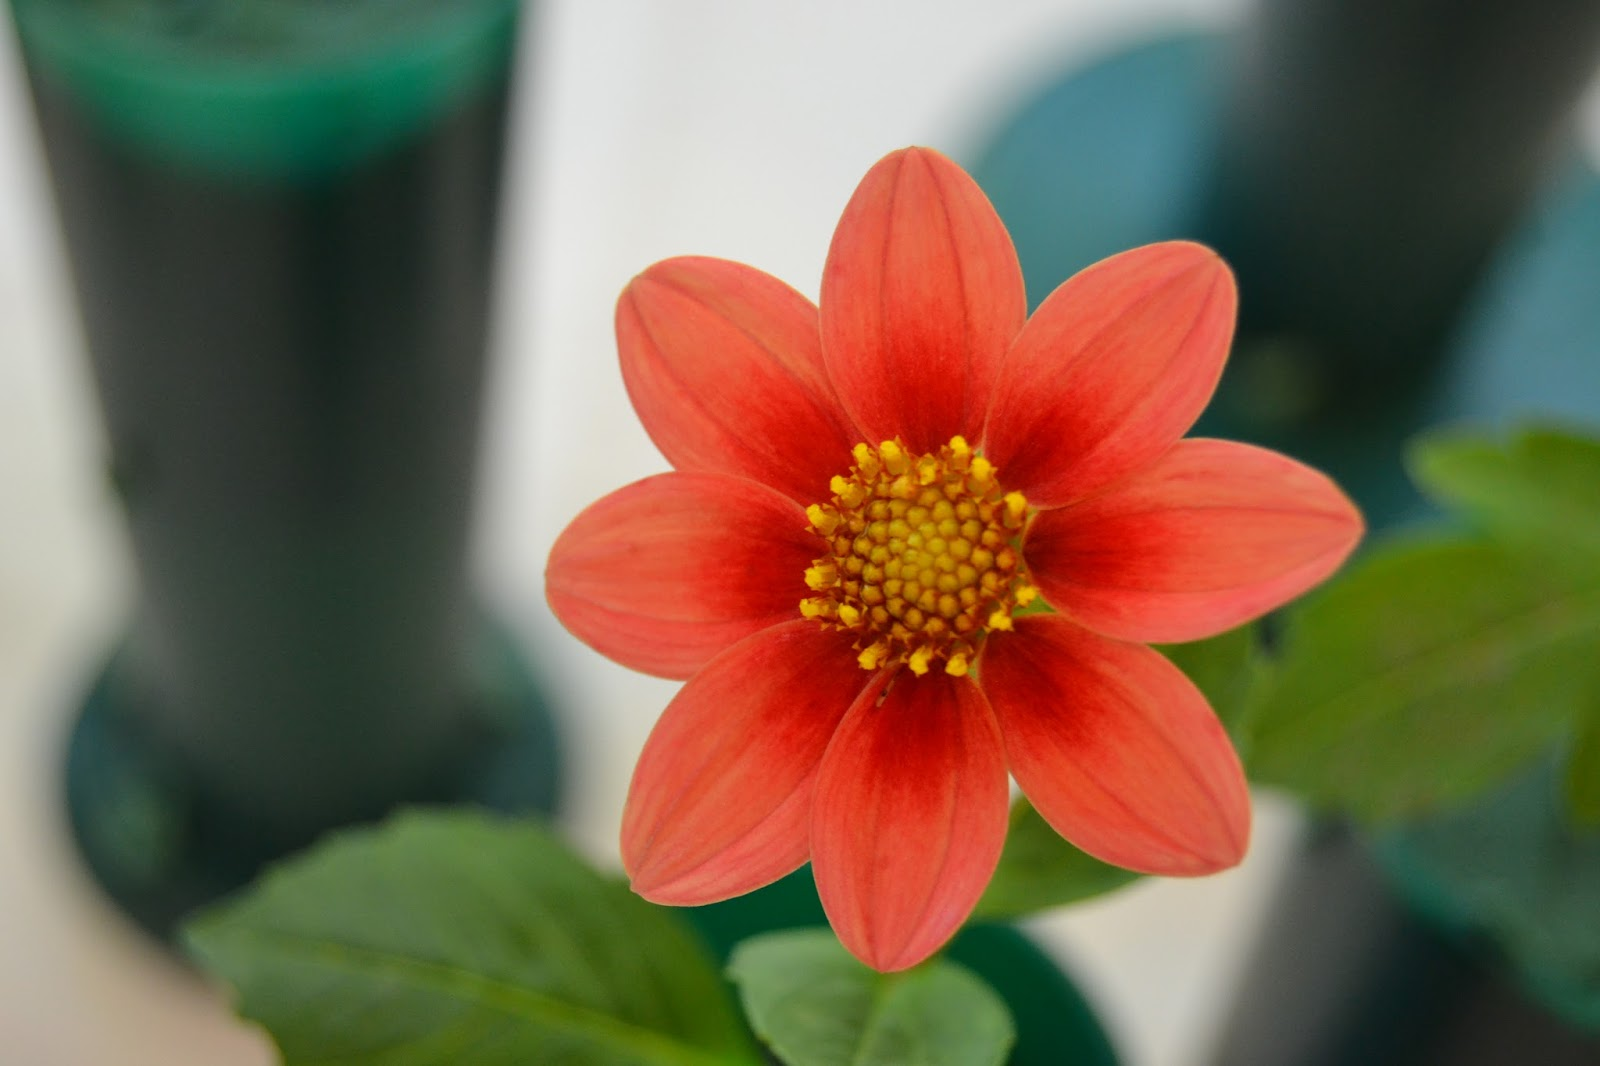 Dahlia Flower in Different Colors | Flower and Garden